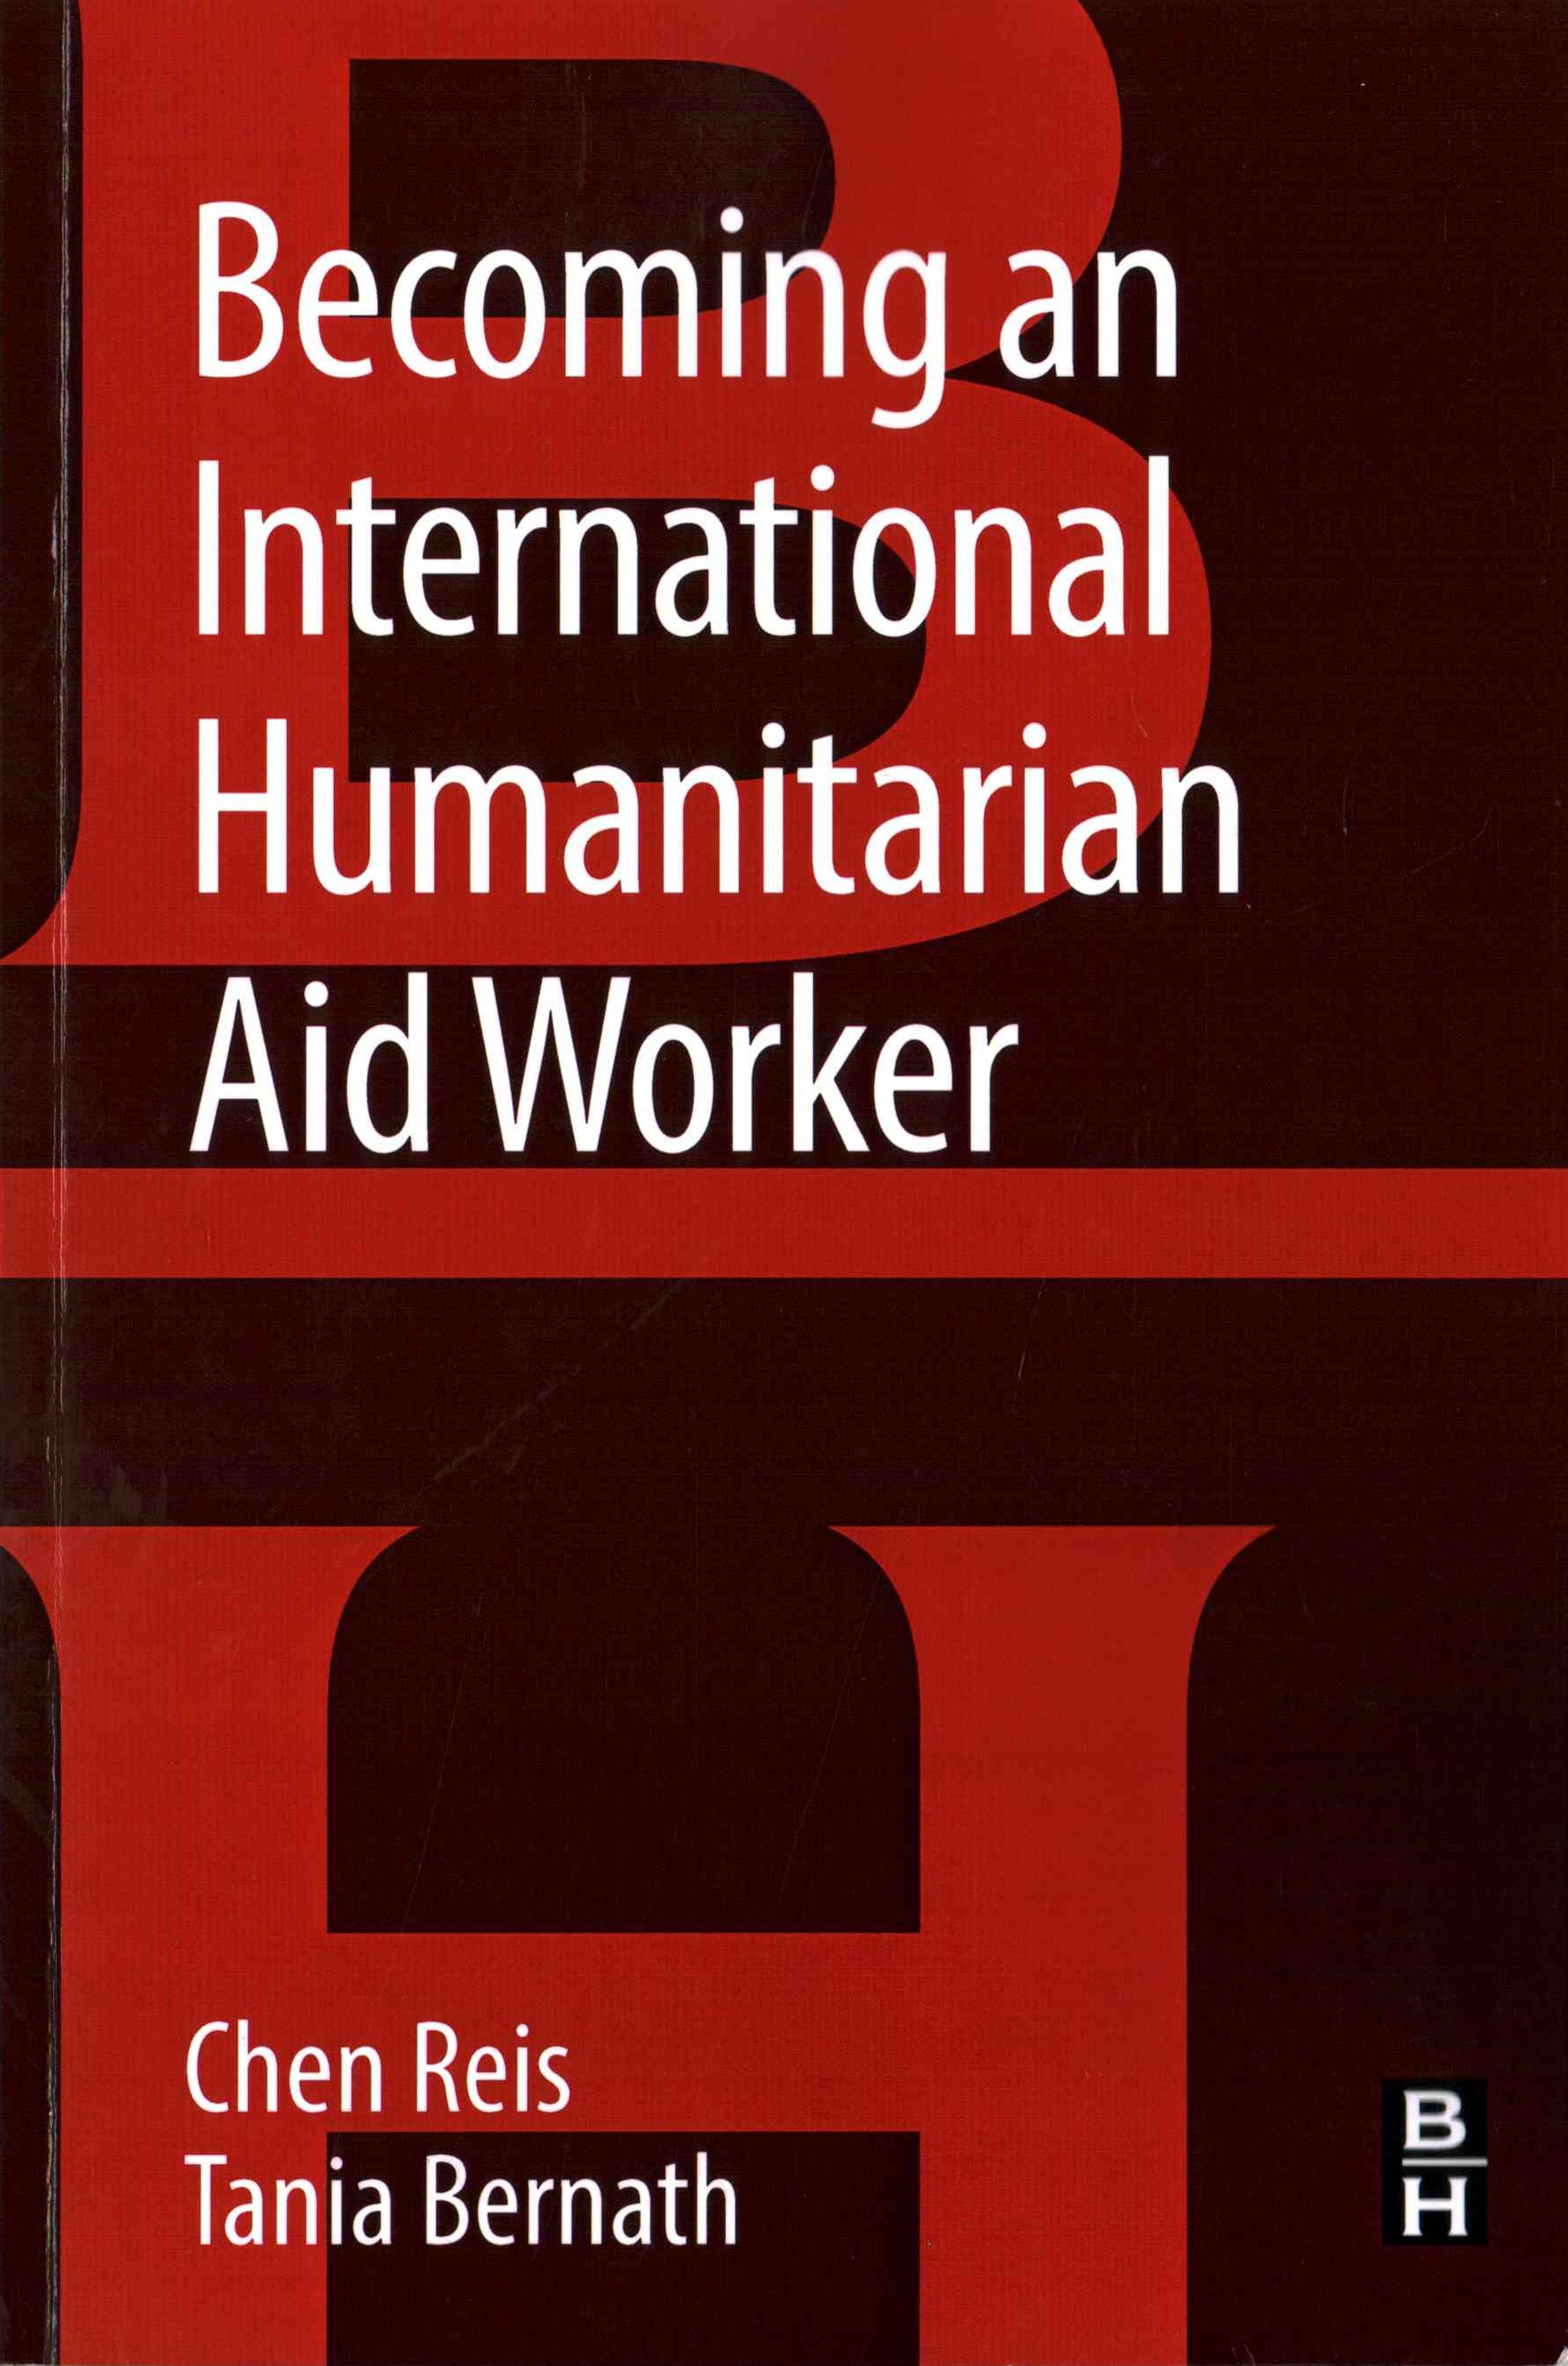 Becoming an International Humanitarian Aid Worker